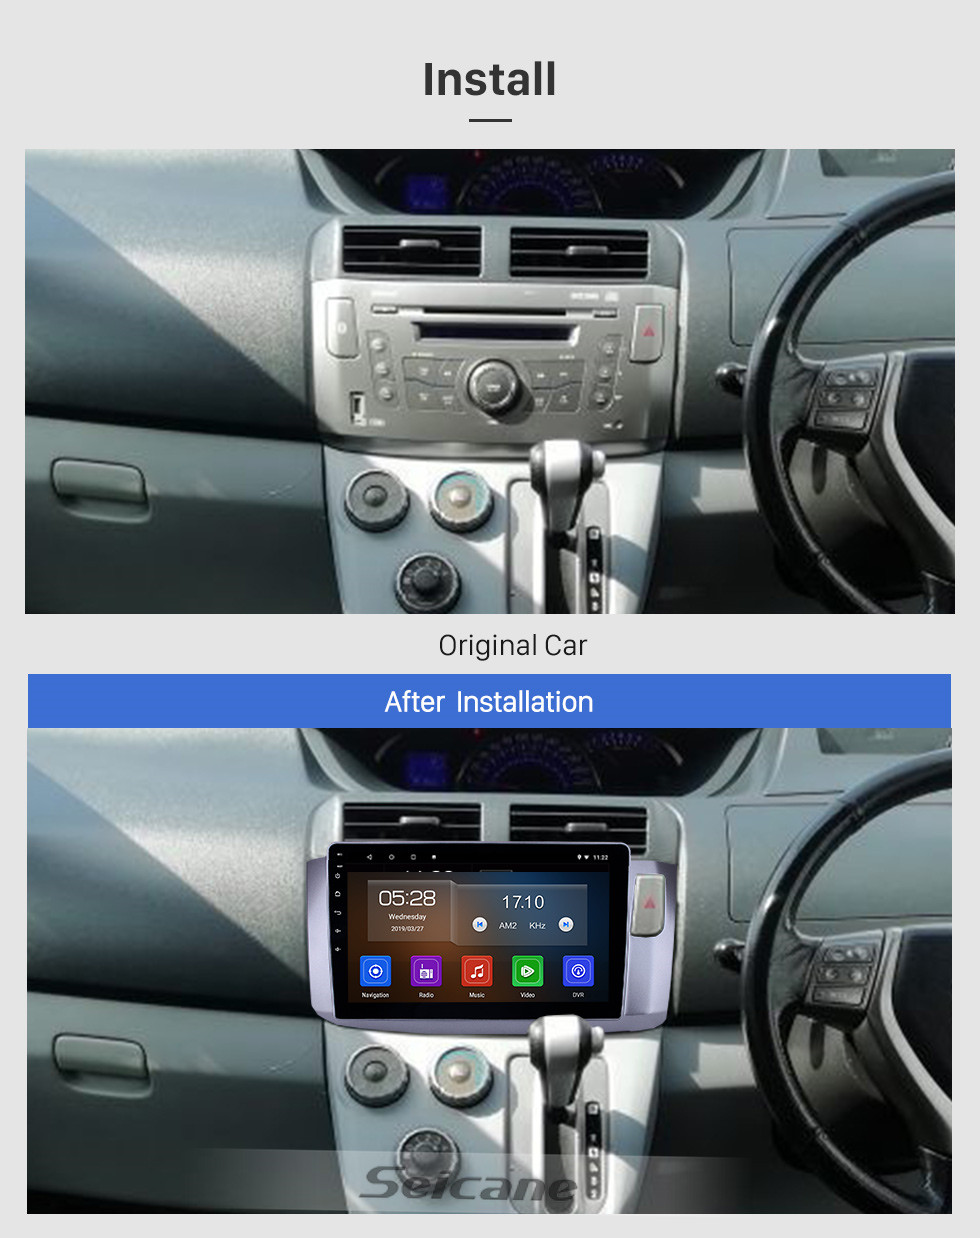 Seicane 10.1 pulgadas 2010 Perodua Alza Android 10.0 Navegación GPS Radio Bluetooth HD Pantalla táctil AUX USB WIFI Carplay compatible OBD2 DAB + 1080P Video